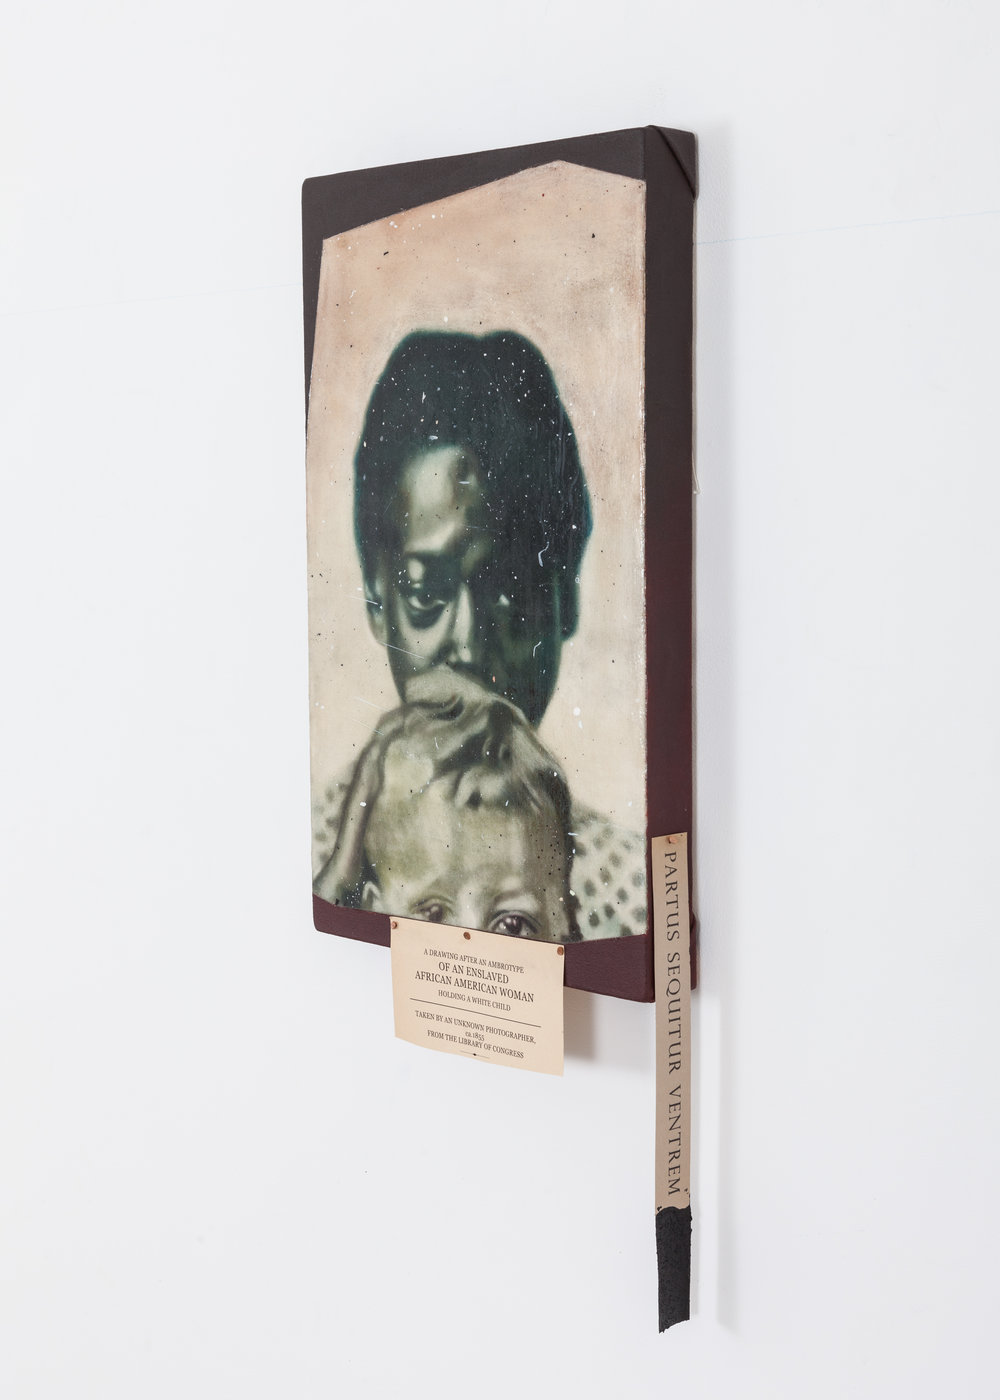 Jason Patterson  Drawing After an Ambrotype Of an Enslaved African American Woman Holding A White Child, Taken by unknown photographer, Library of Congress. ca. 1855  Spray fixed soft pastel on raw canvas under self leveling clear gel & varnish, with acrylic & paper 2016